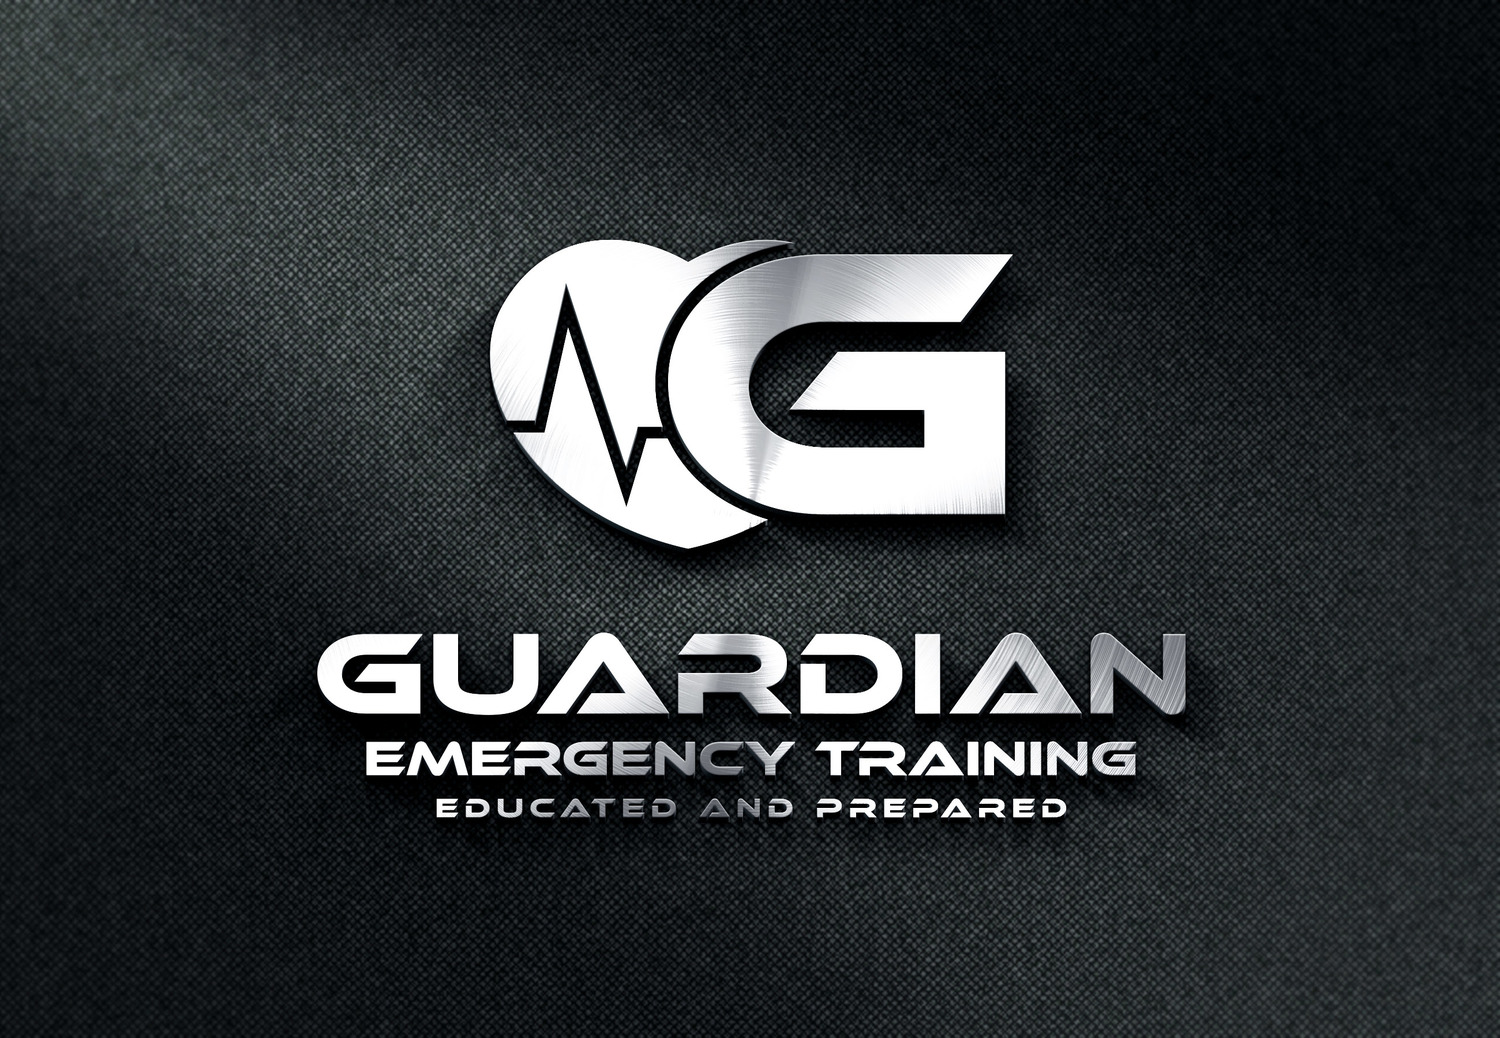 Guardian Emergency Training